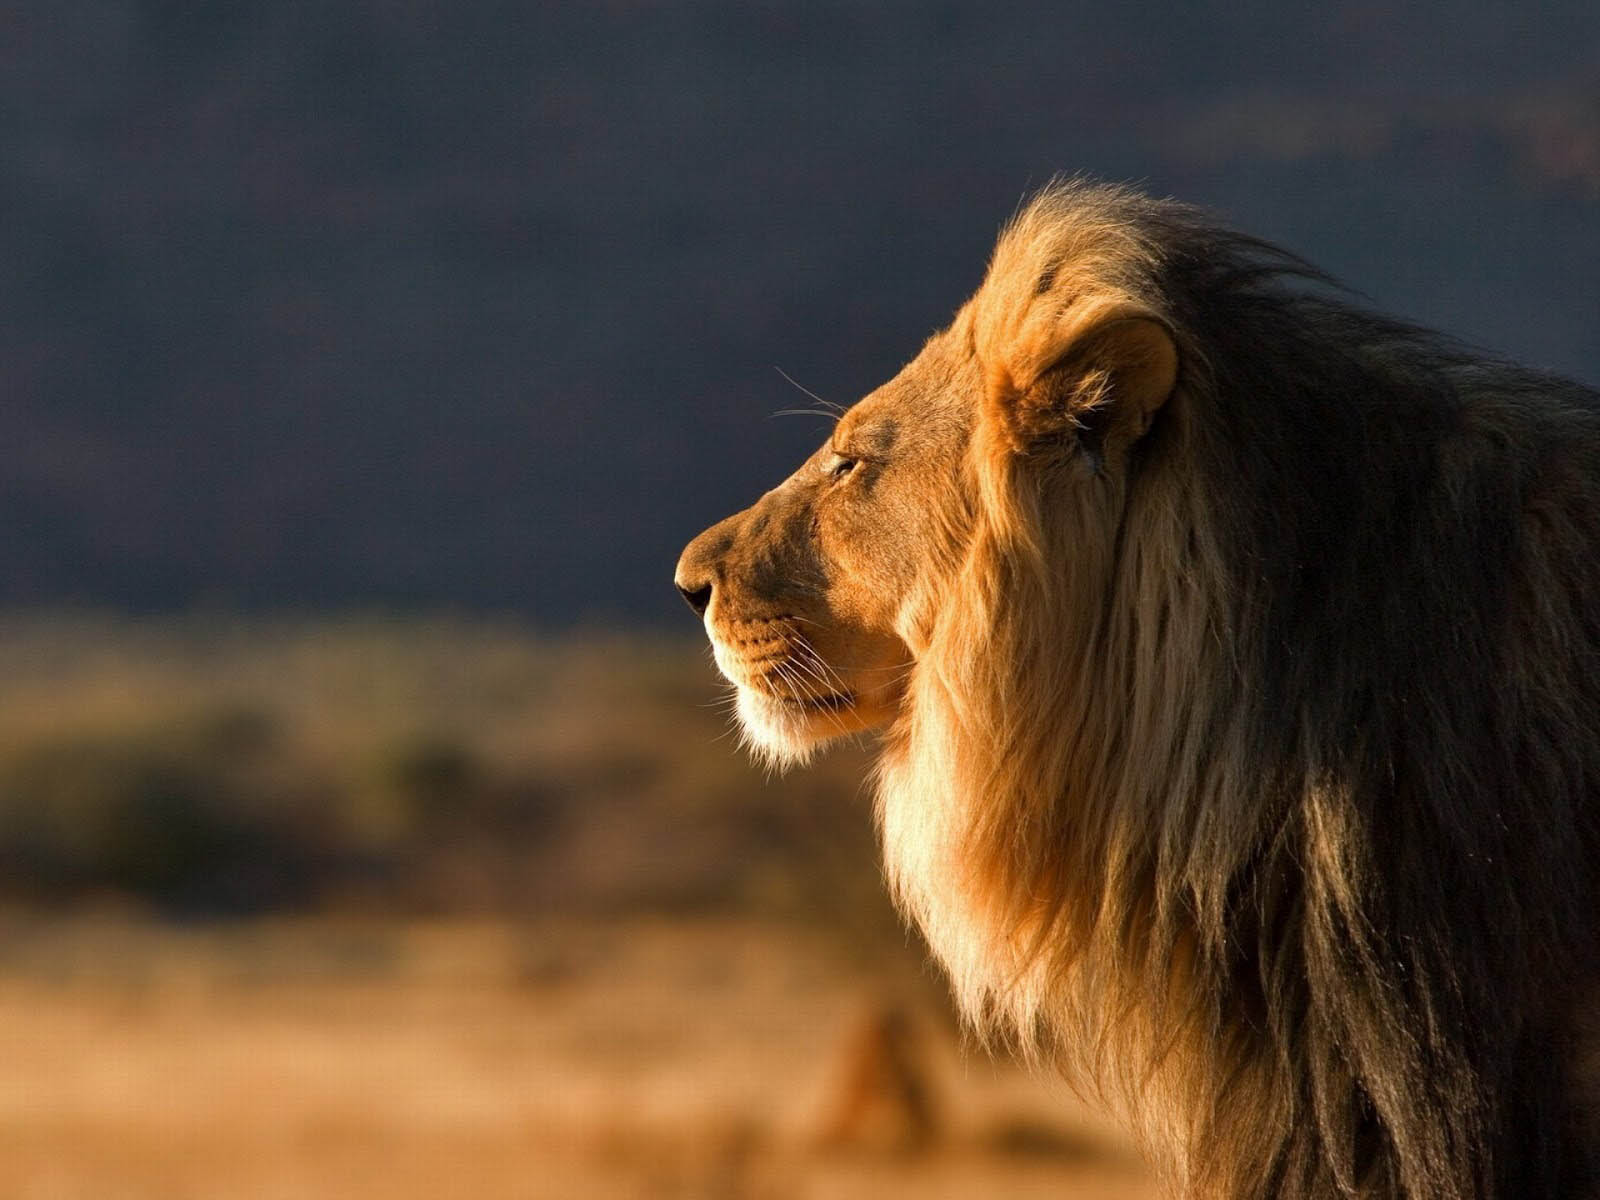 wallpaper: Male Lion Wallpapers